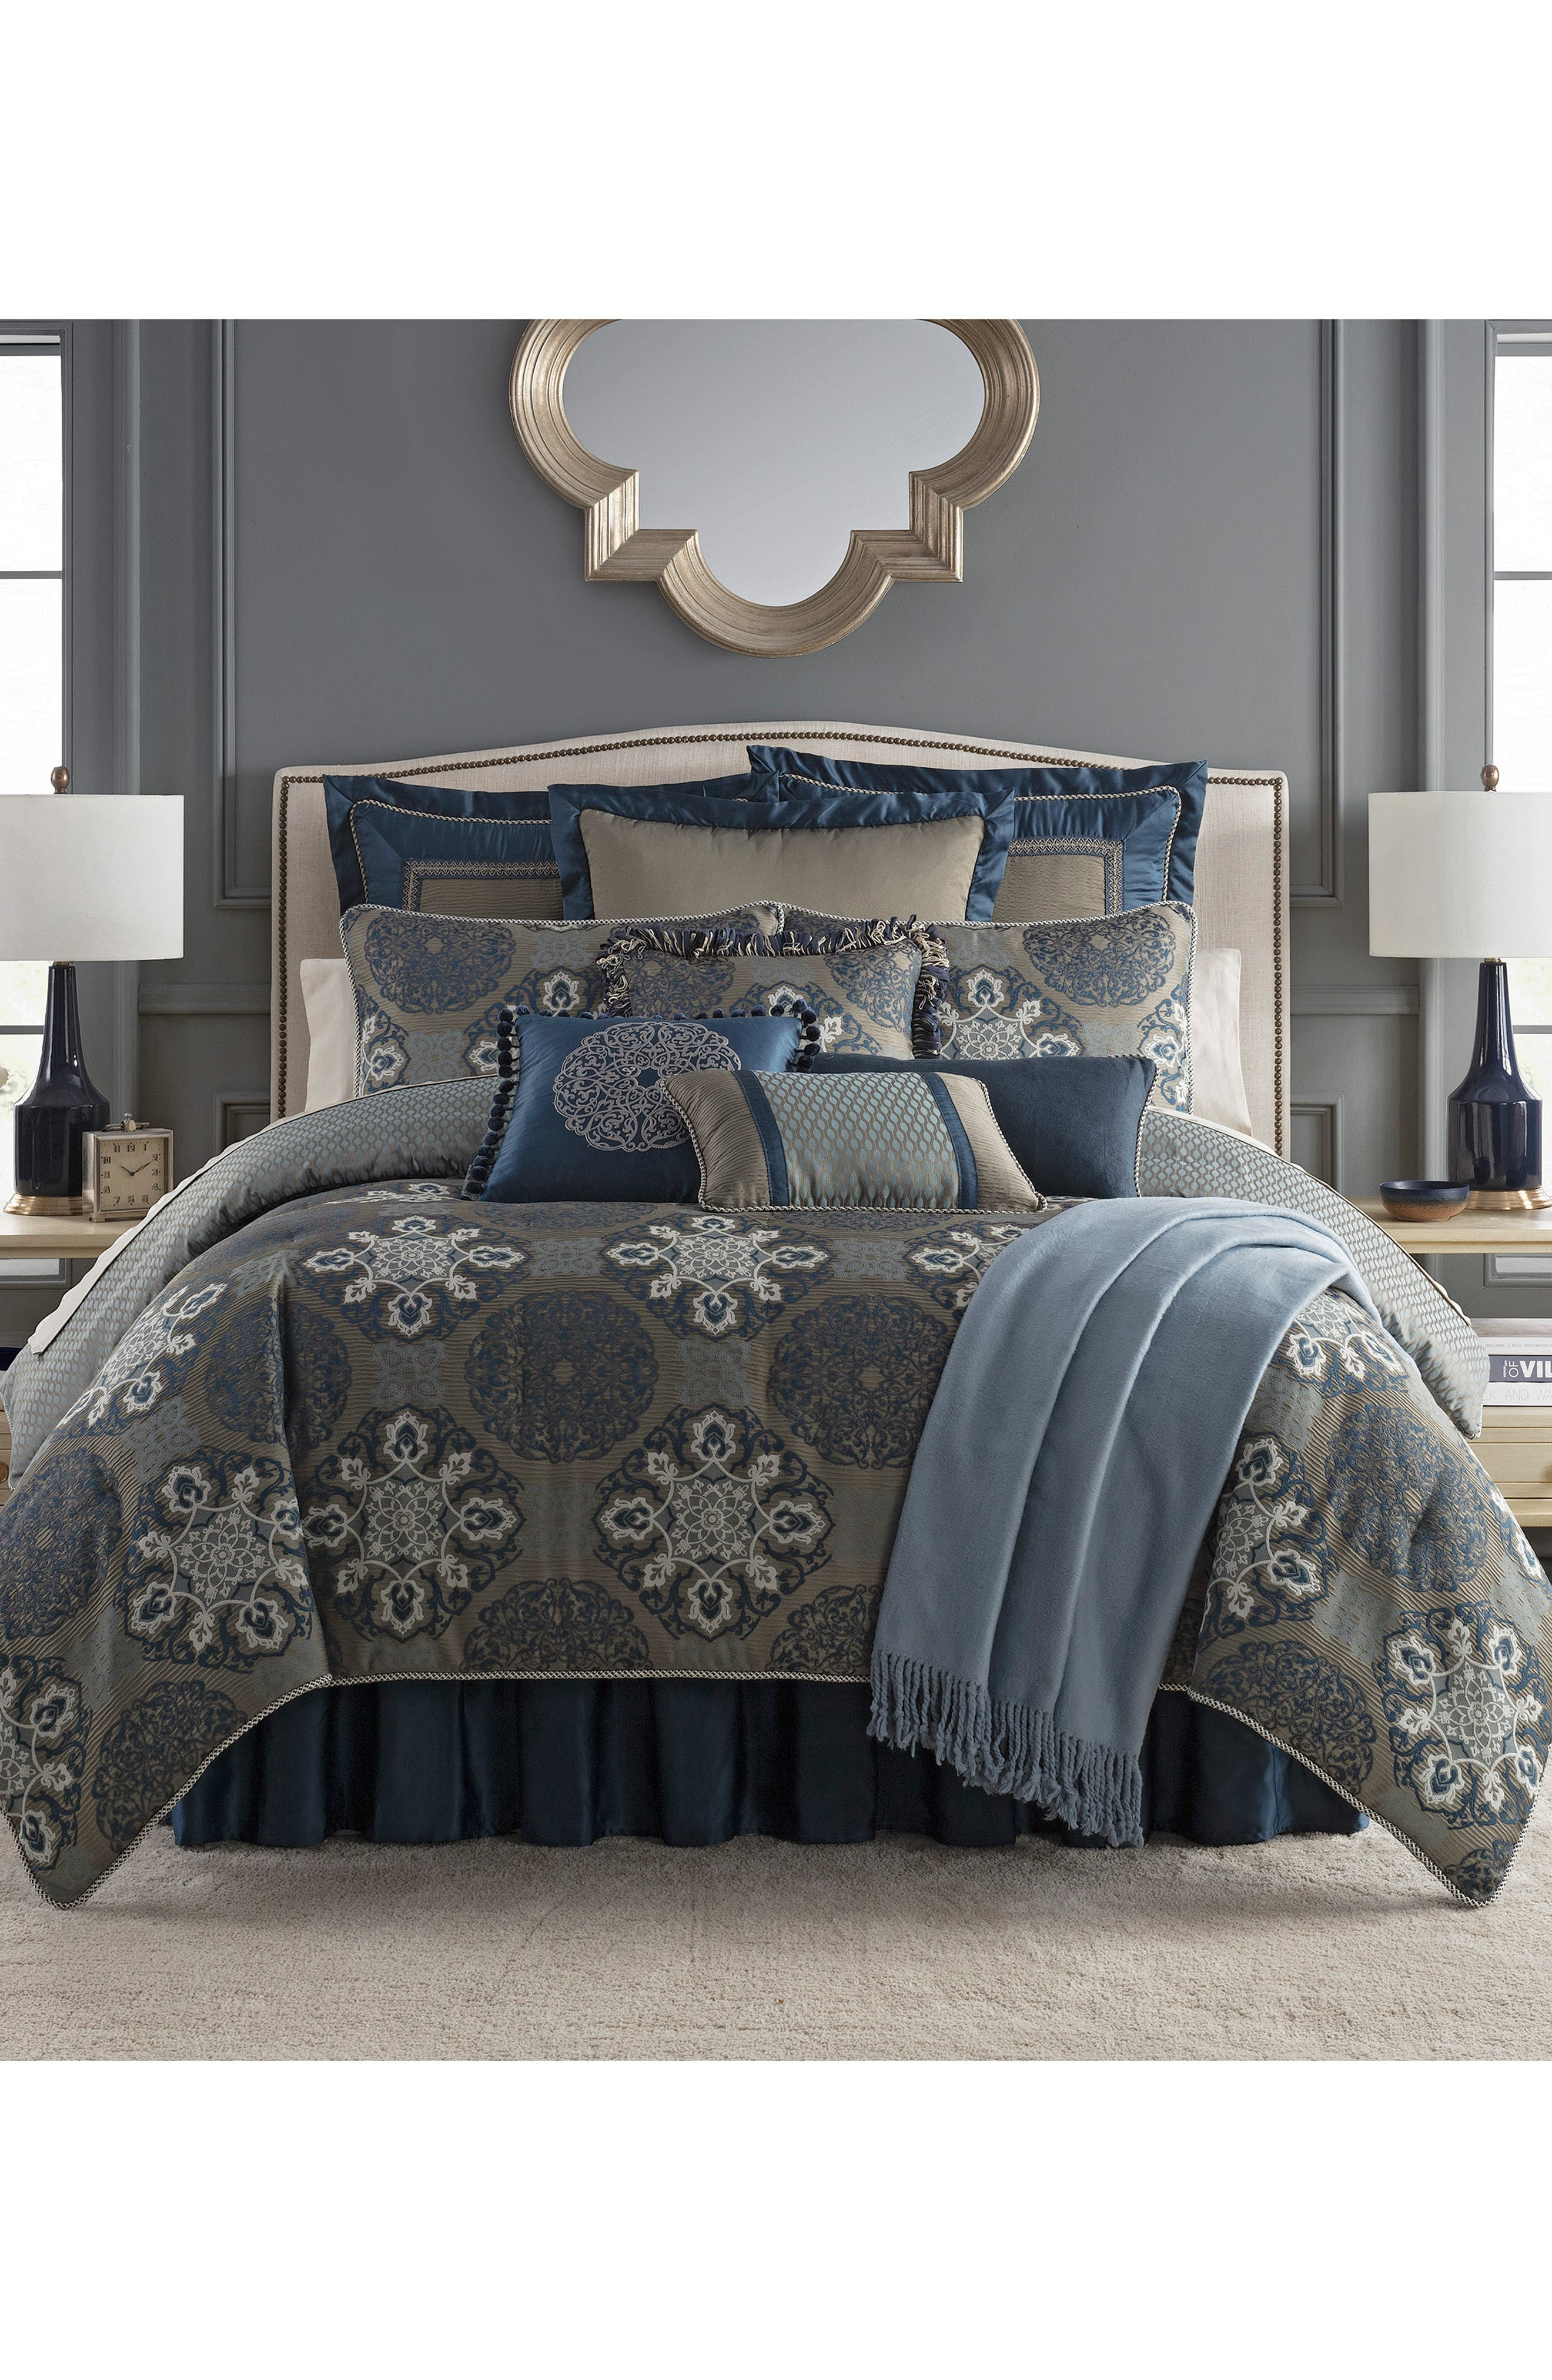 Jonet Reversible Comforter, Sham & Bedskirt Set, Main, color, INDIGO